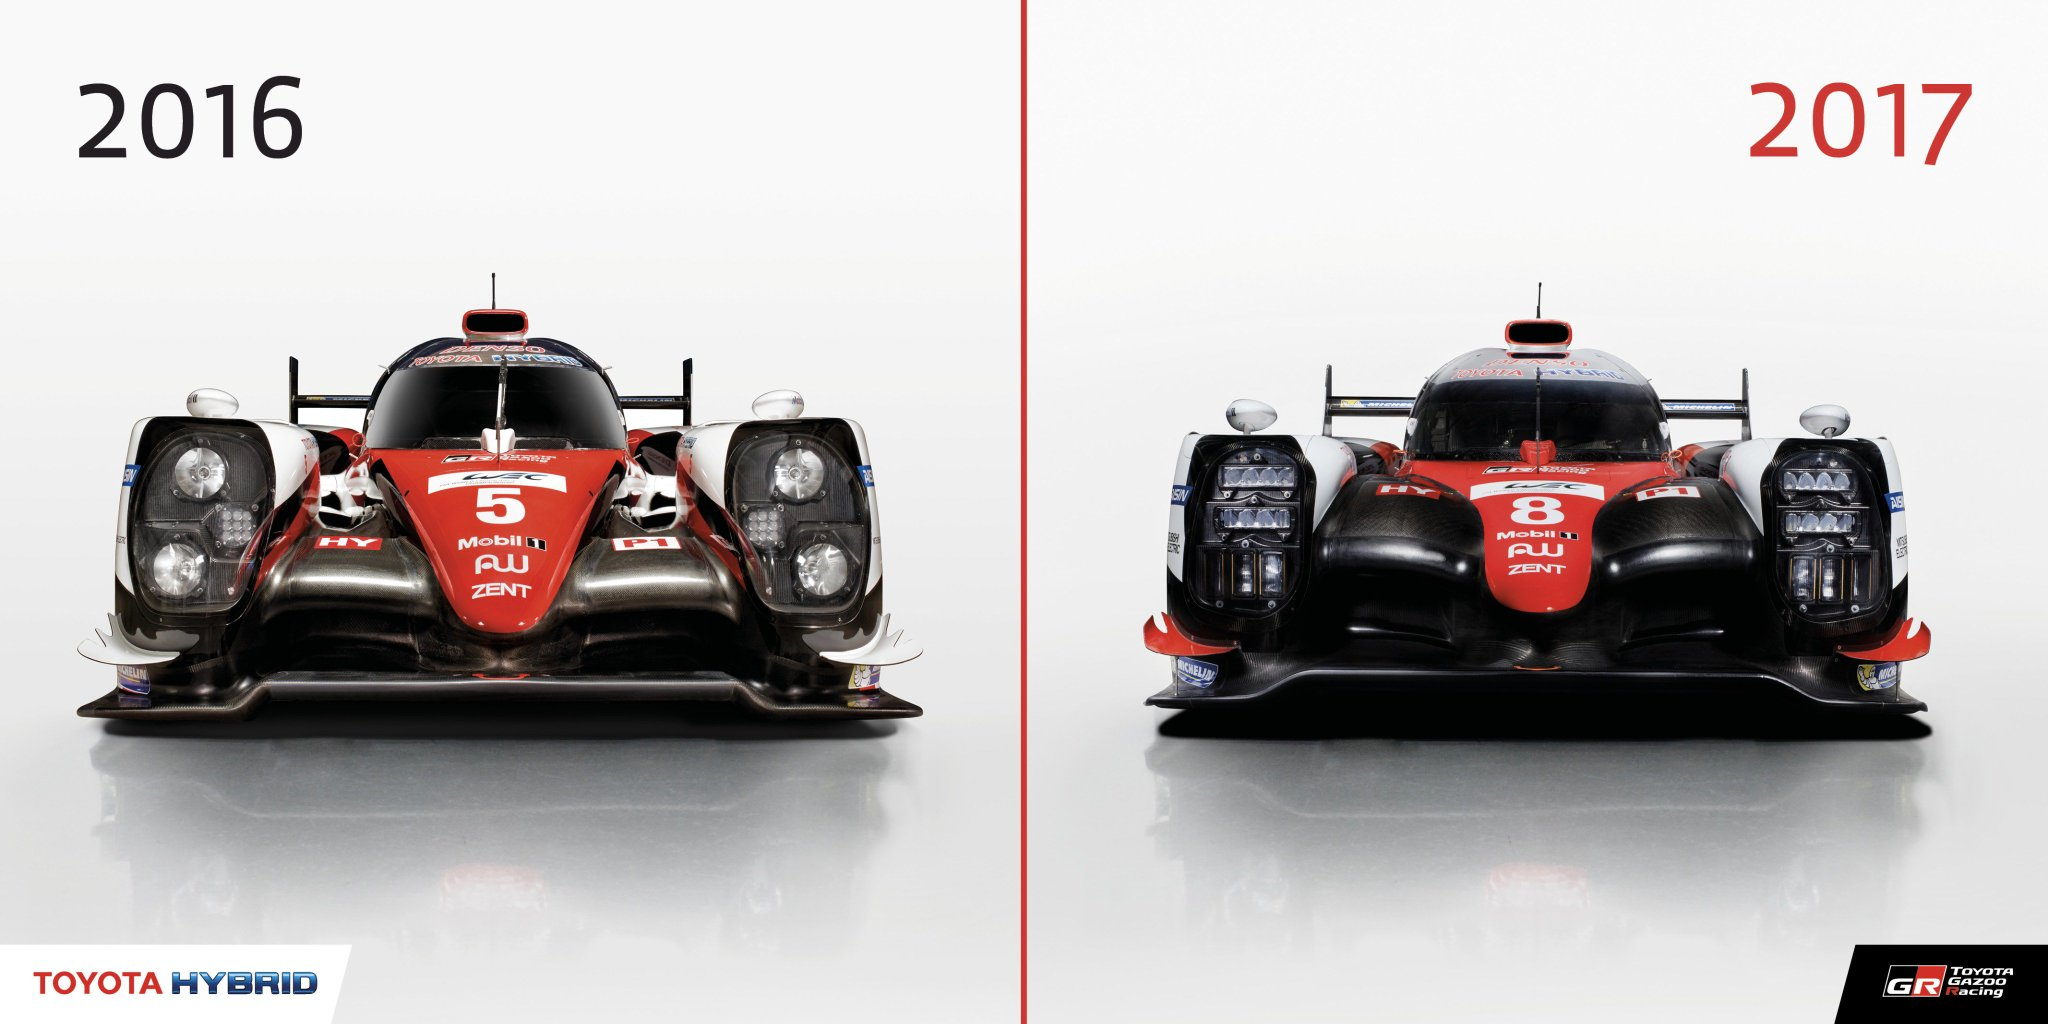 toyota gazoo racing wec on twitter almost all parts of the 2017 ts050 hybrid have been. Black Bedroom Furniture Sets. Home Design Ideas